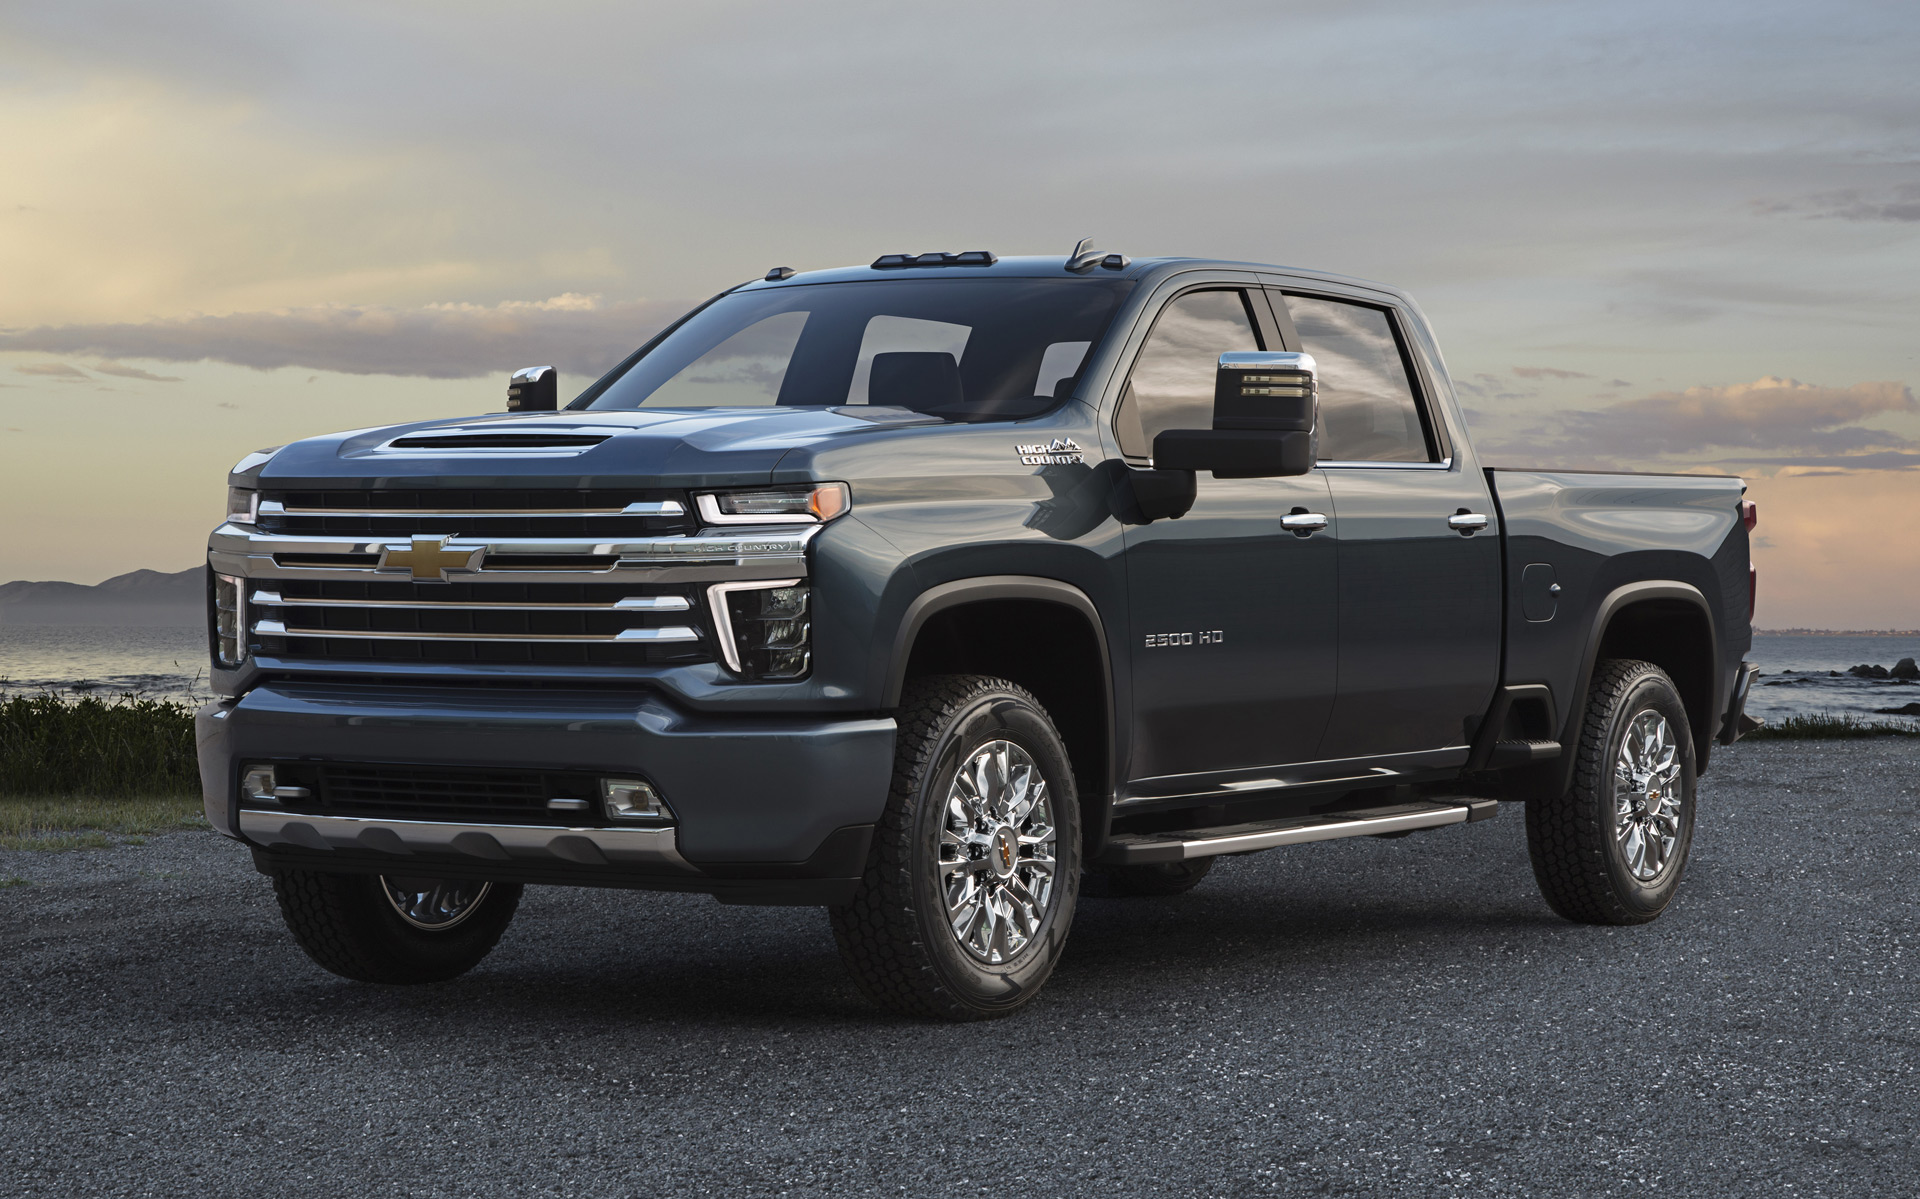 75 All New 2020 Chevy Silverado Interior